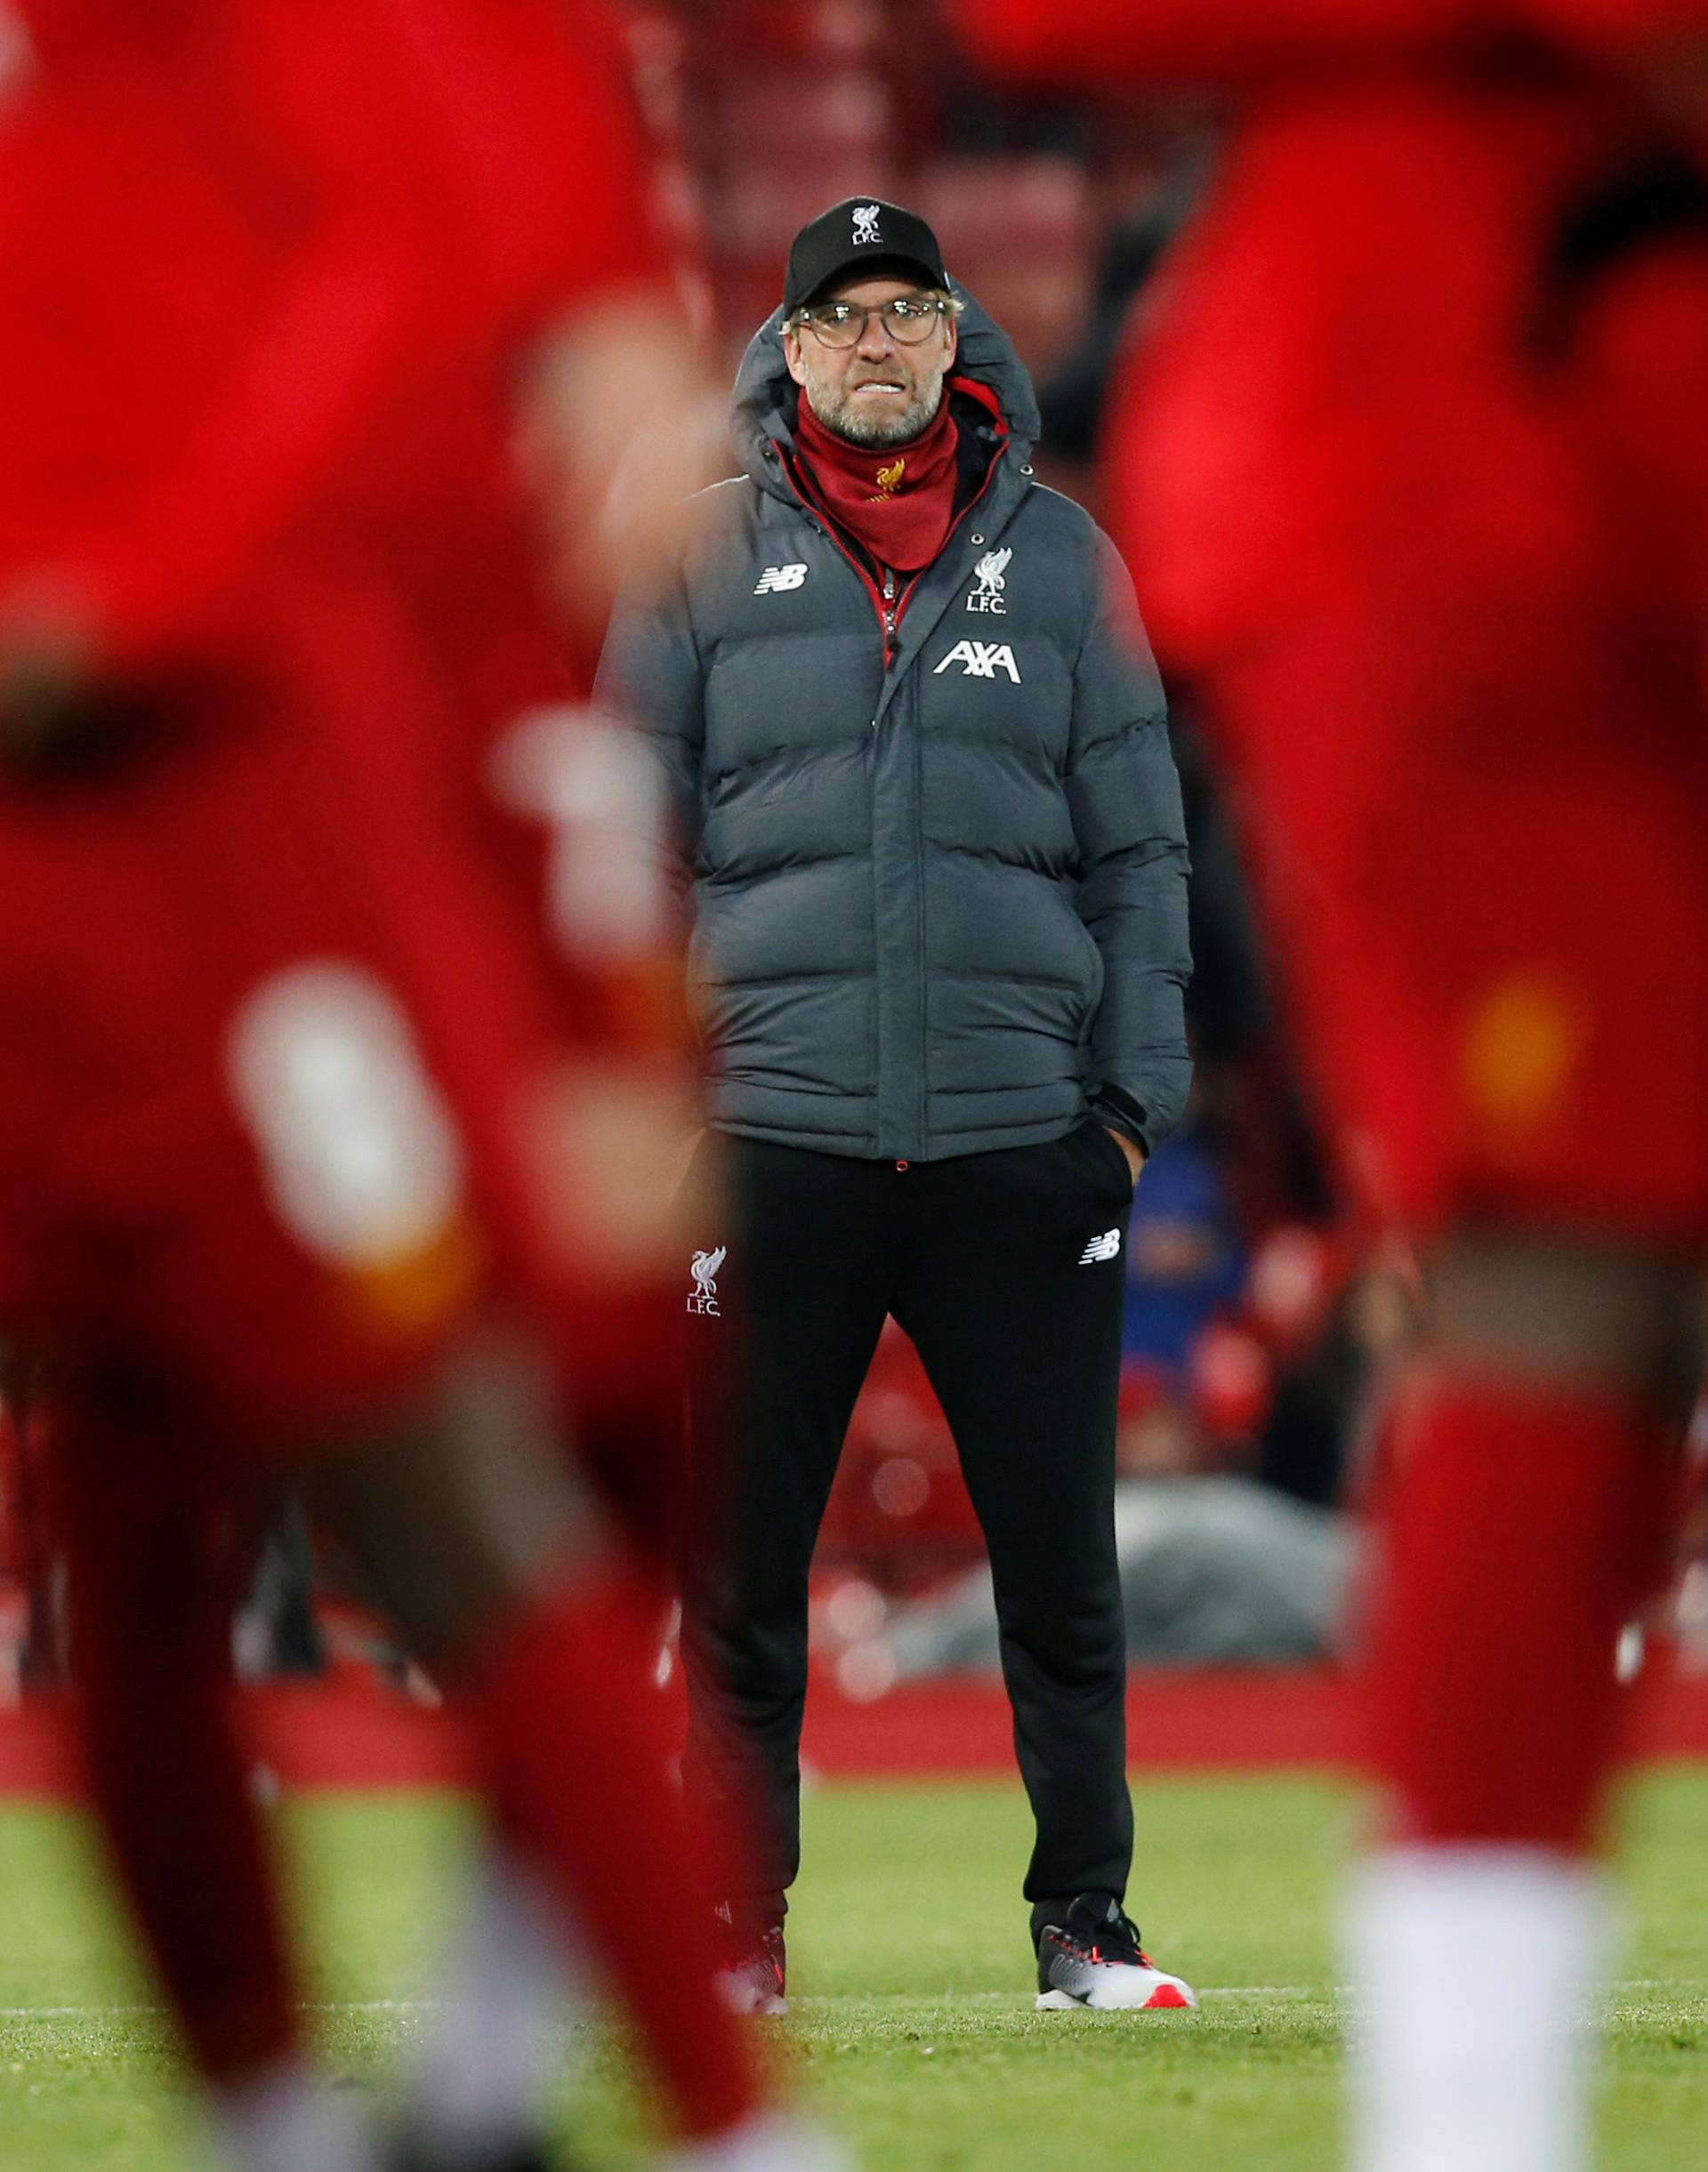 Carabao Cup - Fourth Round - Liverpool v Arsenal